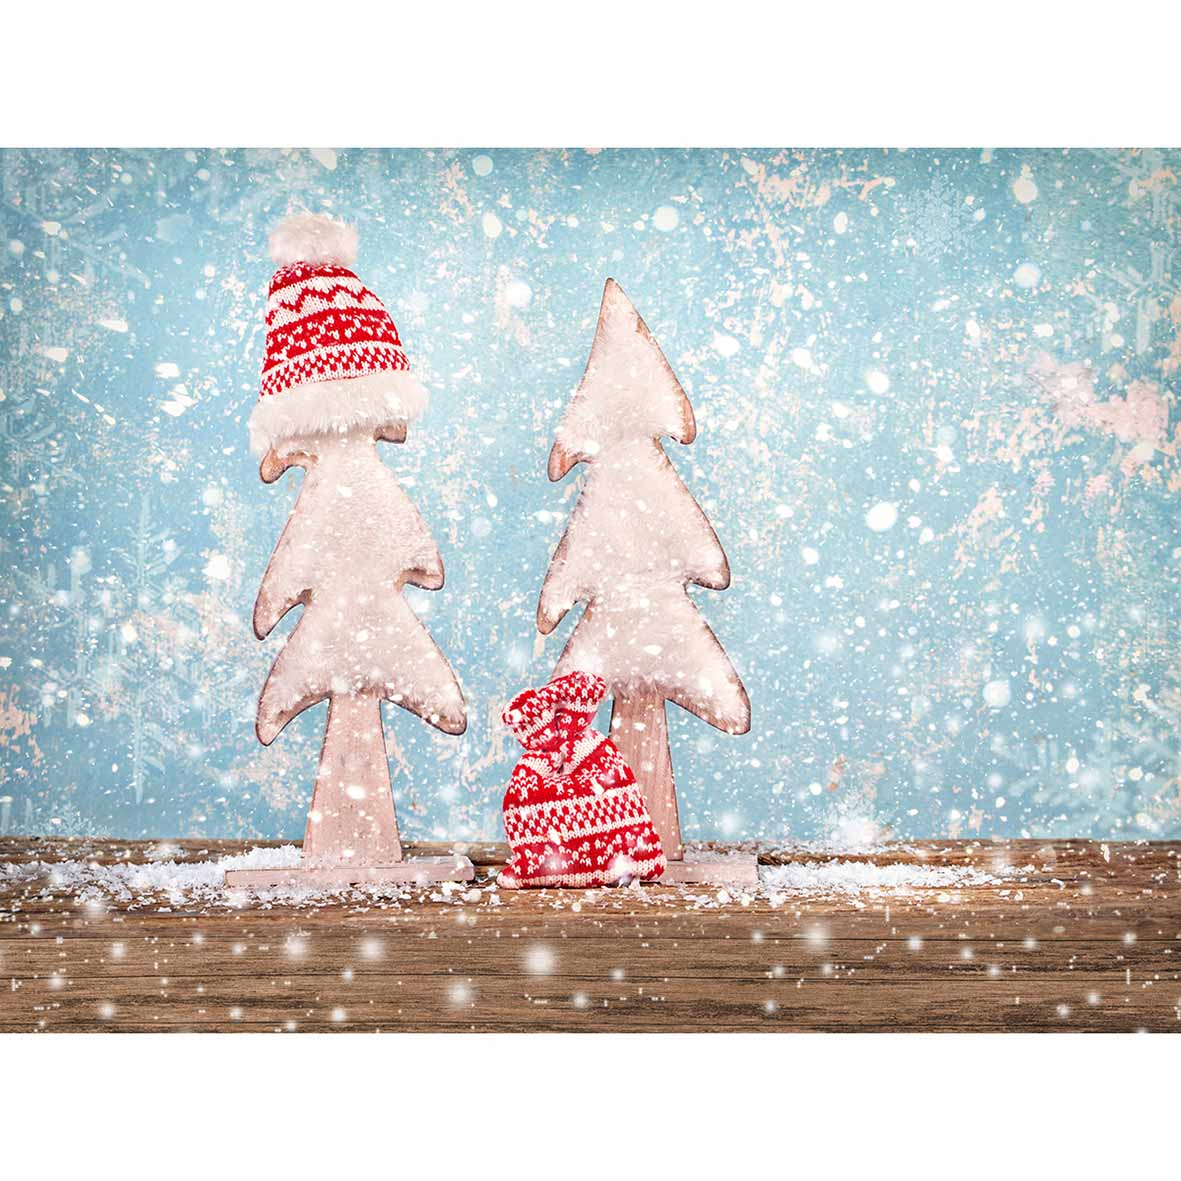 Allenjoy photography Christmas background snowflakes hat wooden ...